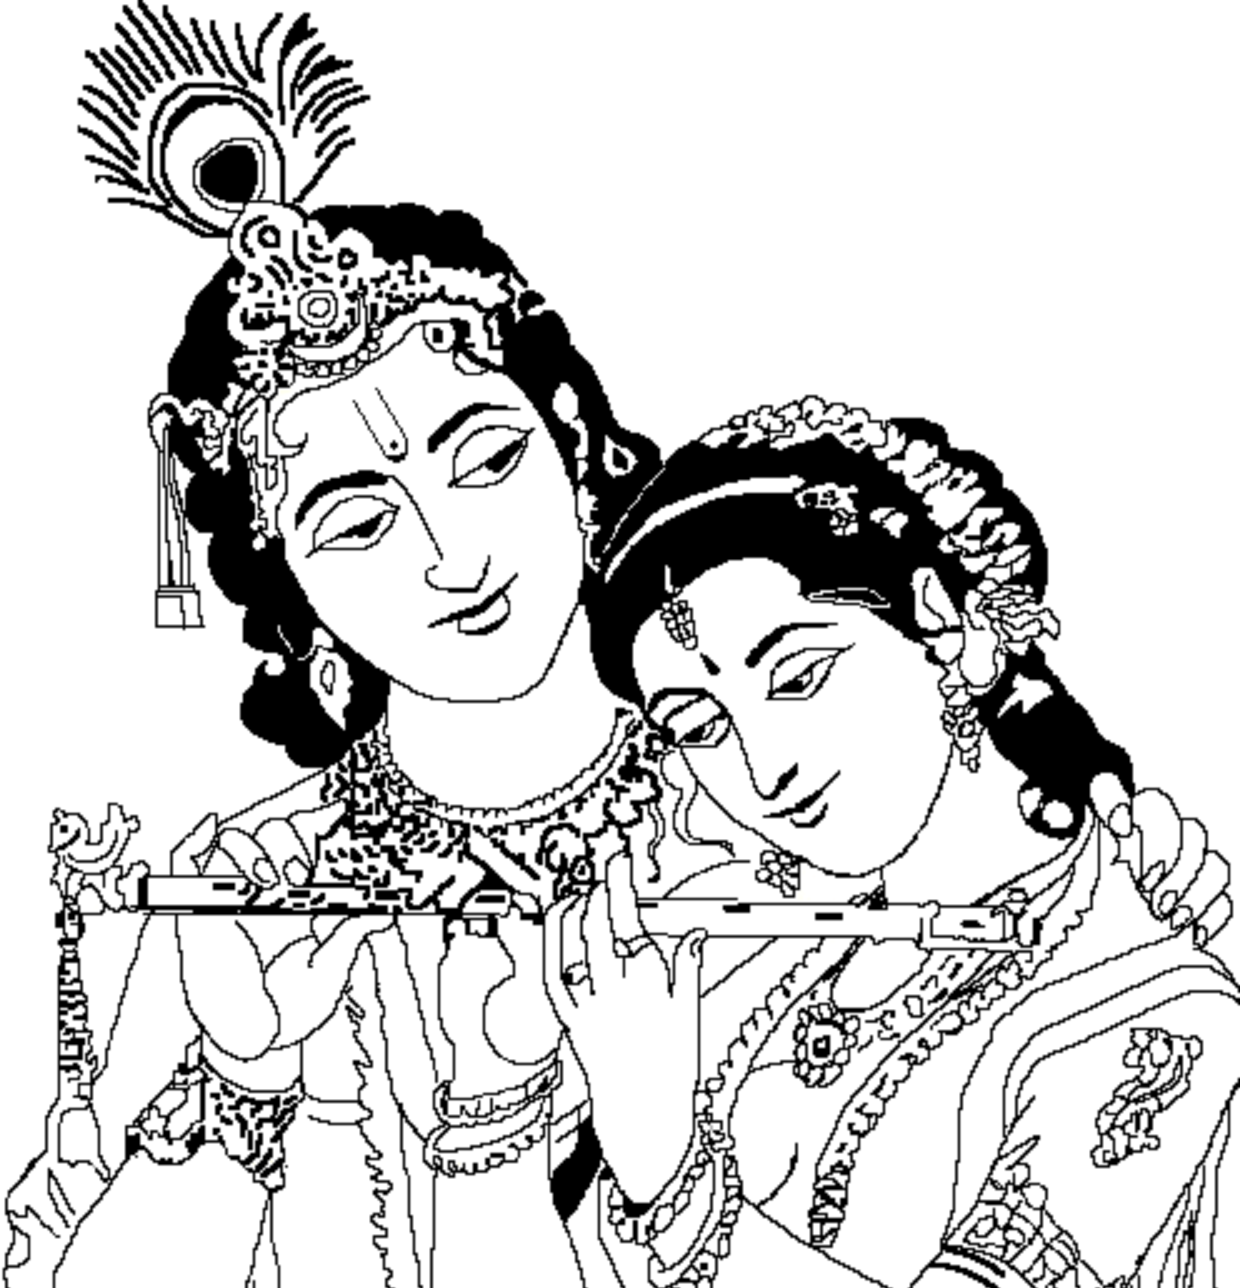 radha krishna black and white png lord radha krishna coloring drawing free wallpaper clipart lord krishna black and white clipart 1240